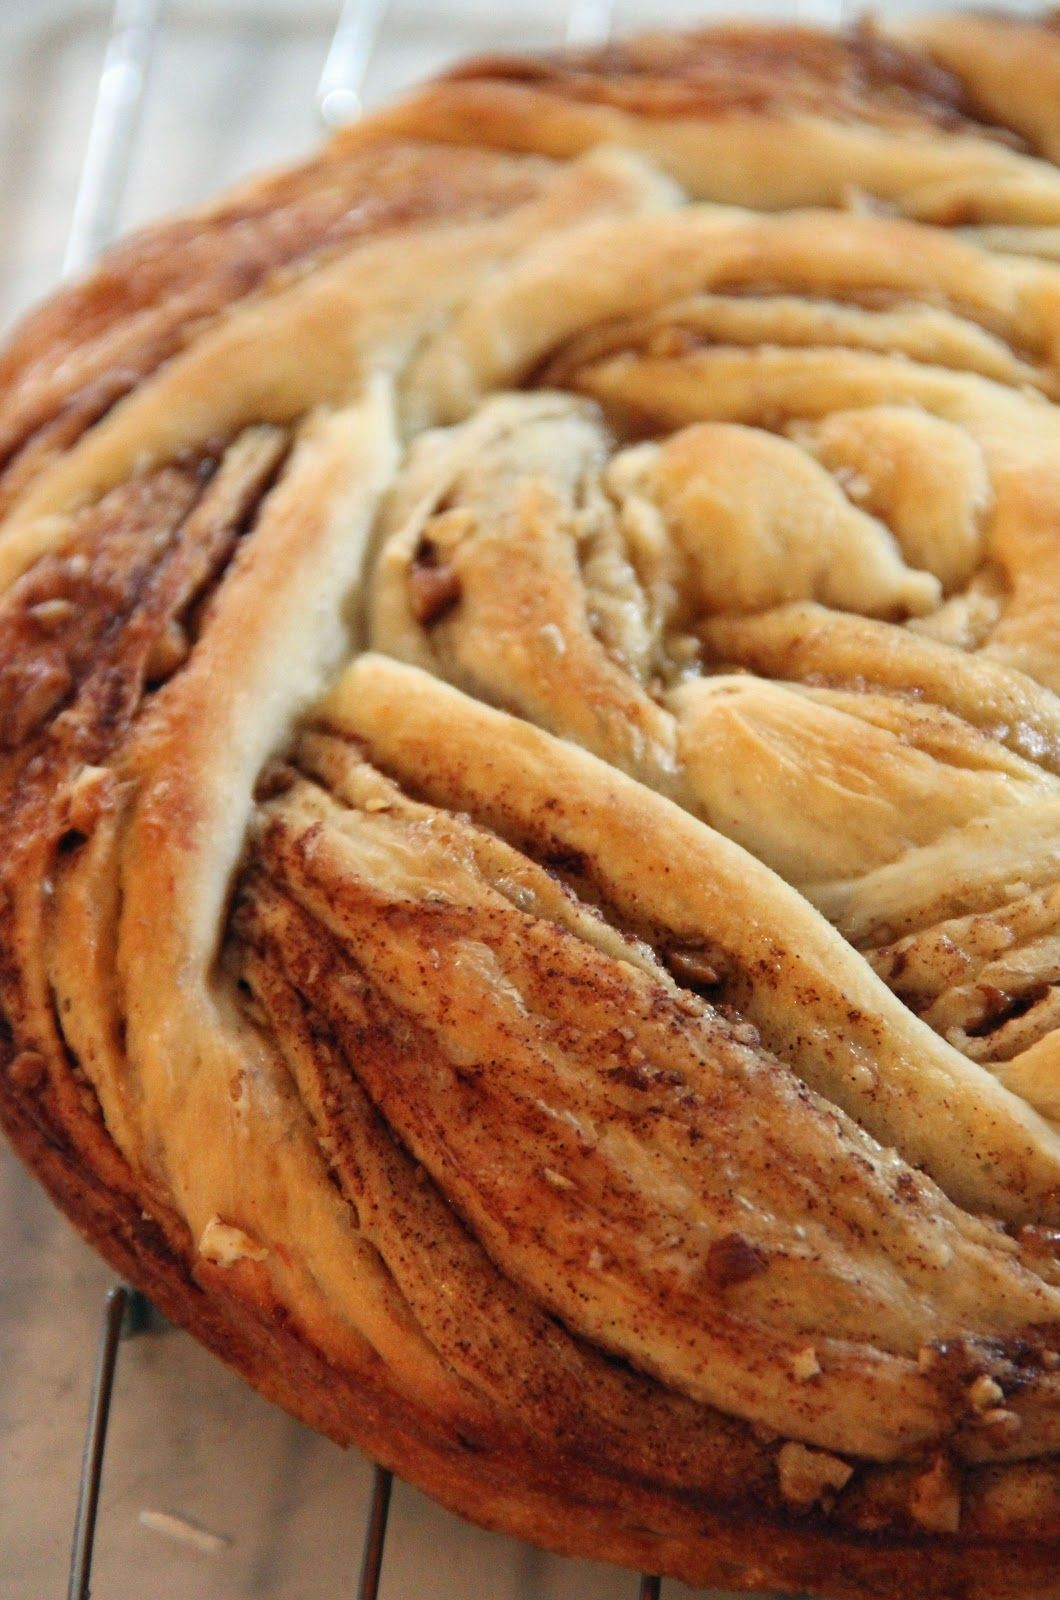 Cinnamon Roll Up Bread - so pretty :)